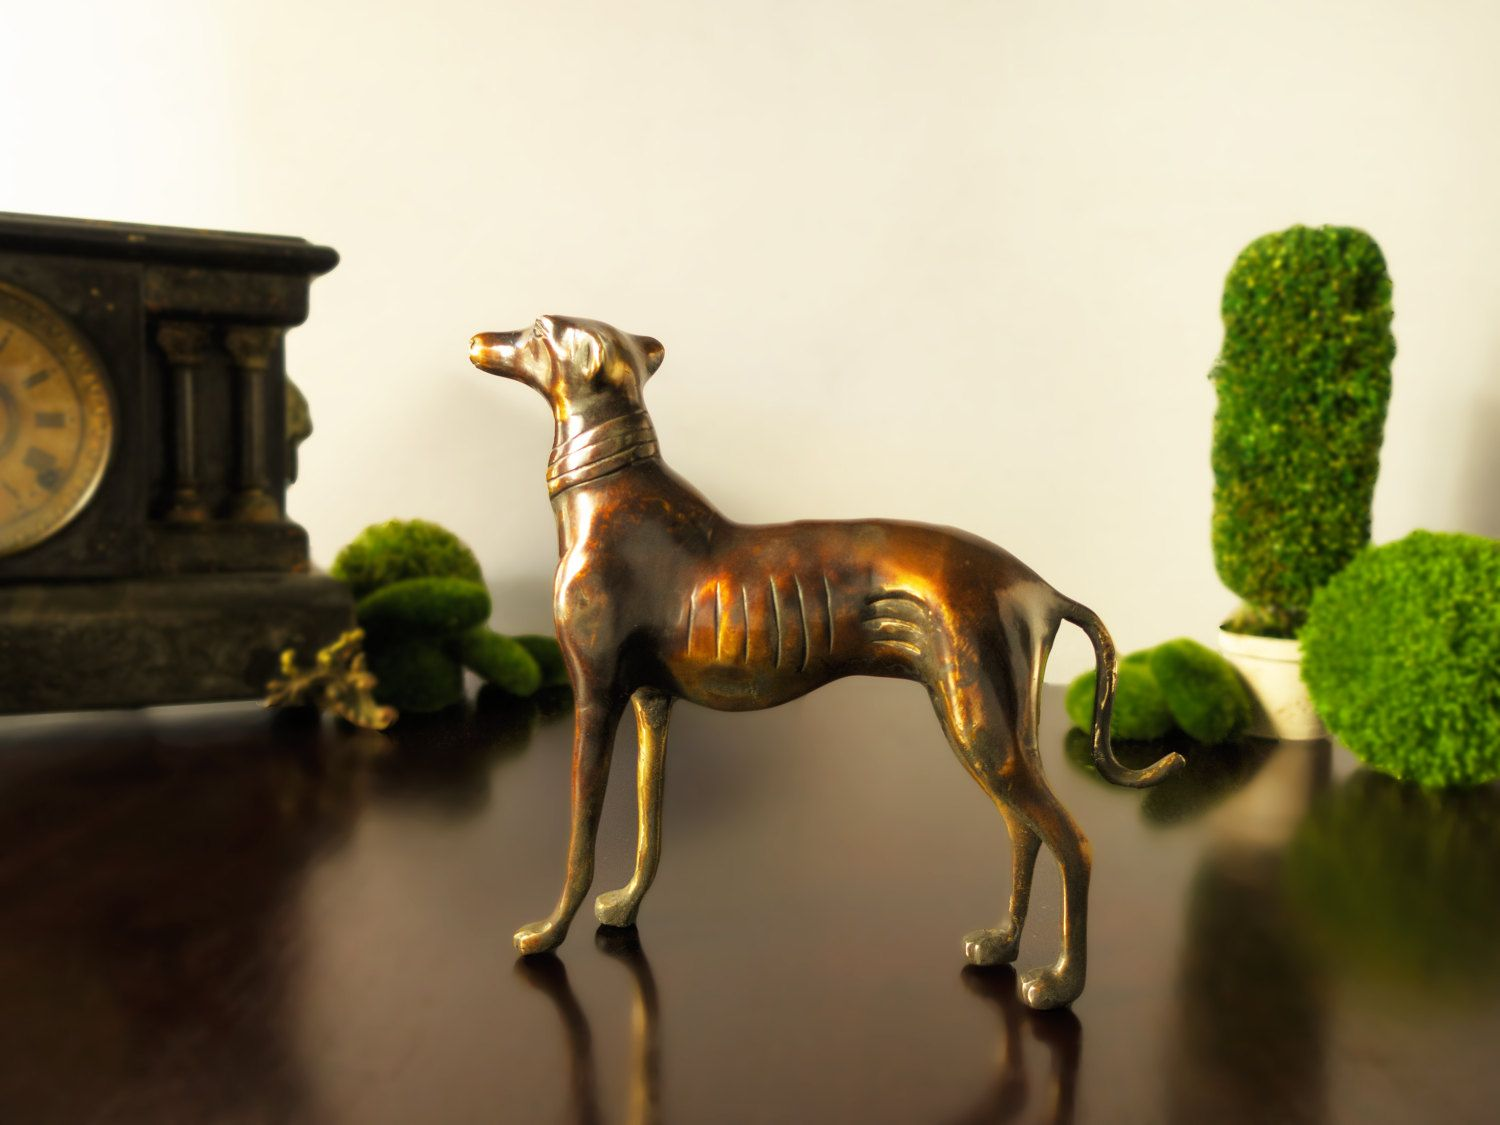 Vintage original hubley fox terrier 381 full figured large art statue - Vintage Bronze Greyhound Dog Doorstop Large Figurine Statue Sculpture Brass Dog Whippet Gold By Inventifdesigns On